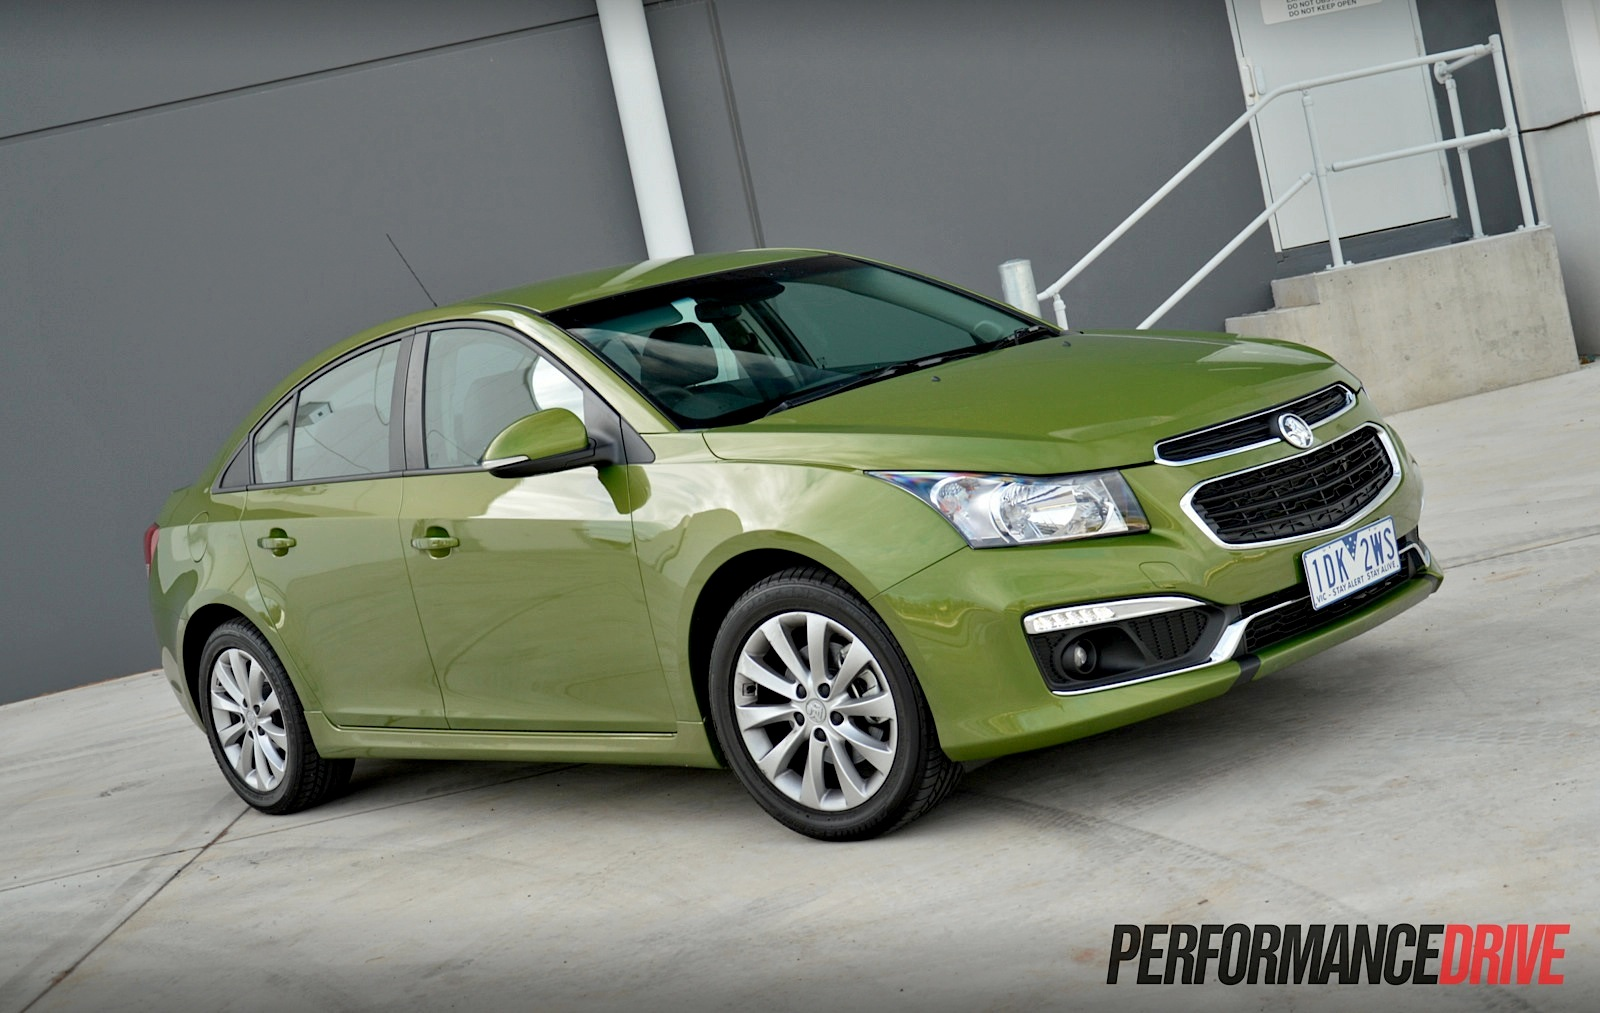 2015 holden cruze sri review video performancedrive land rover wiring diagram kenwood car audio land rover parts diagram